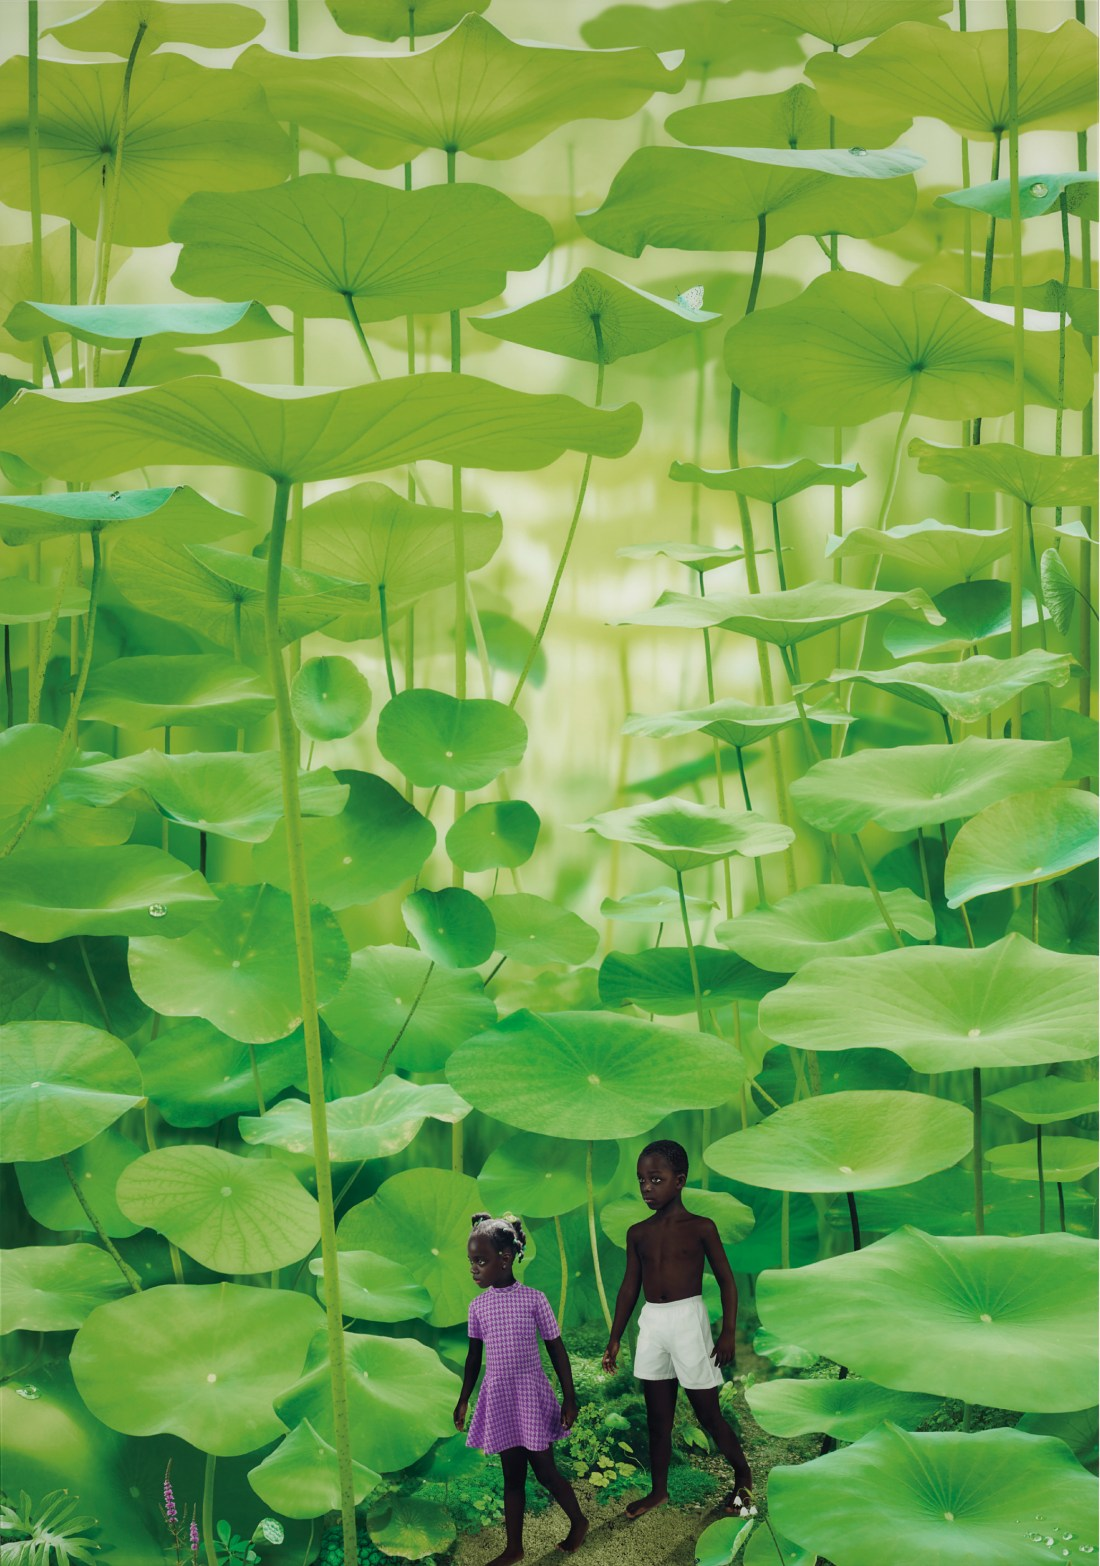 Ruud van Empel's Boy & Girl, the first of a limited edition of seven prints, created in 2008.